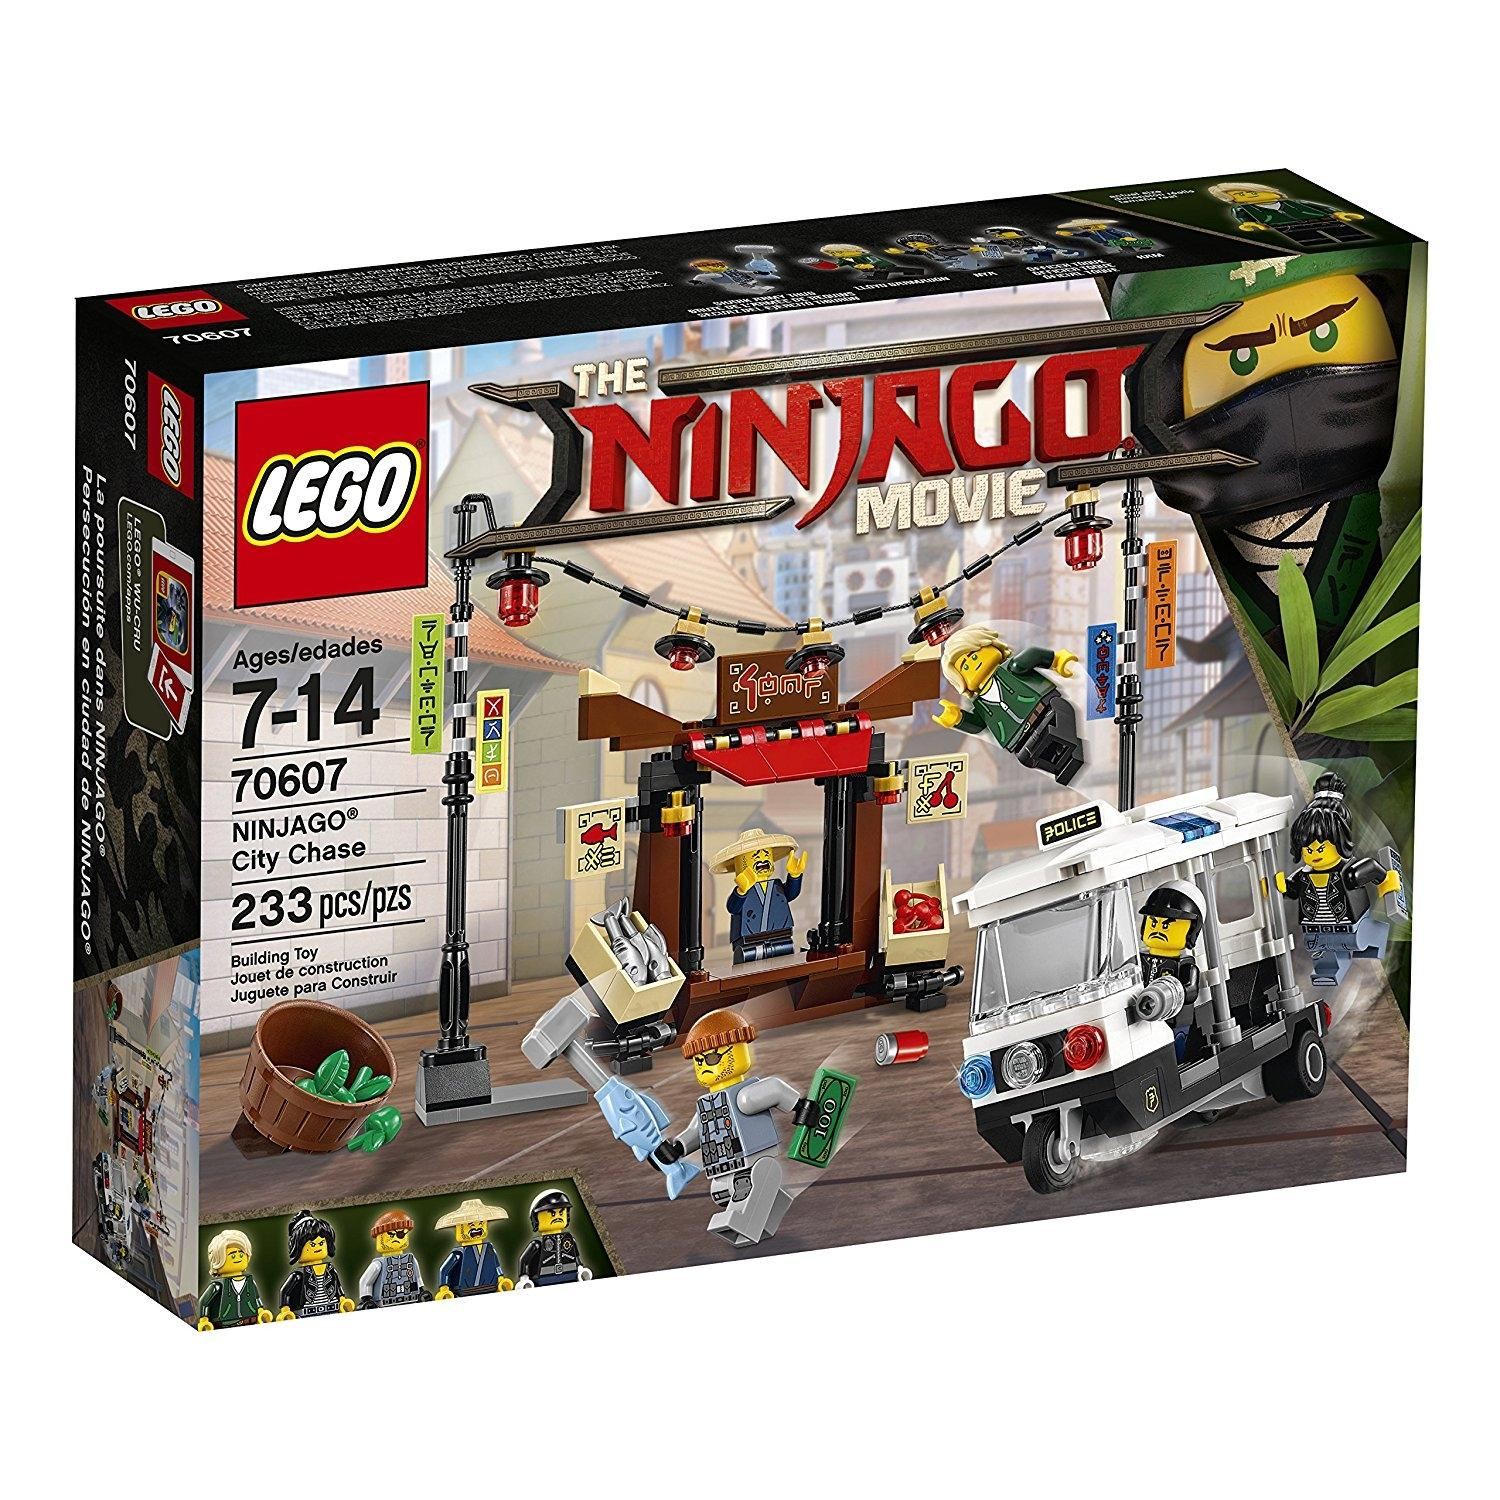 LEGO Ninjago Movie City Chase Building Kit